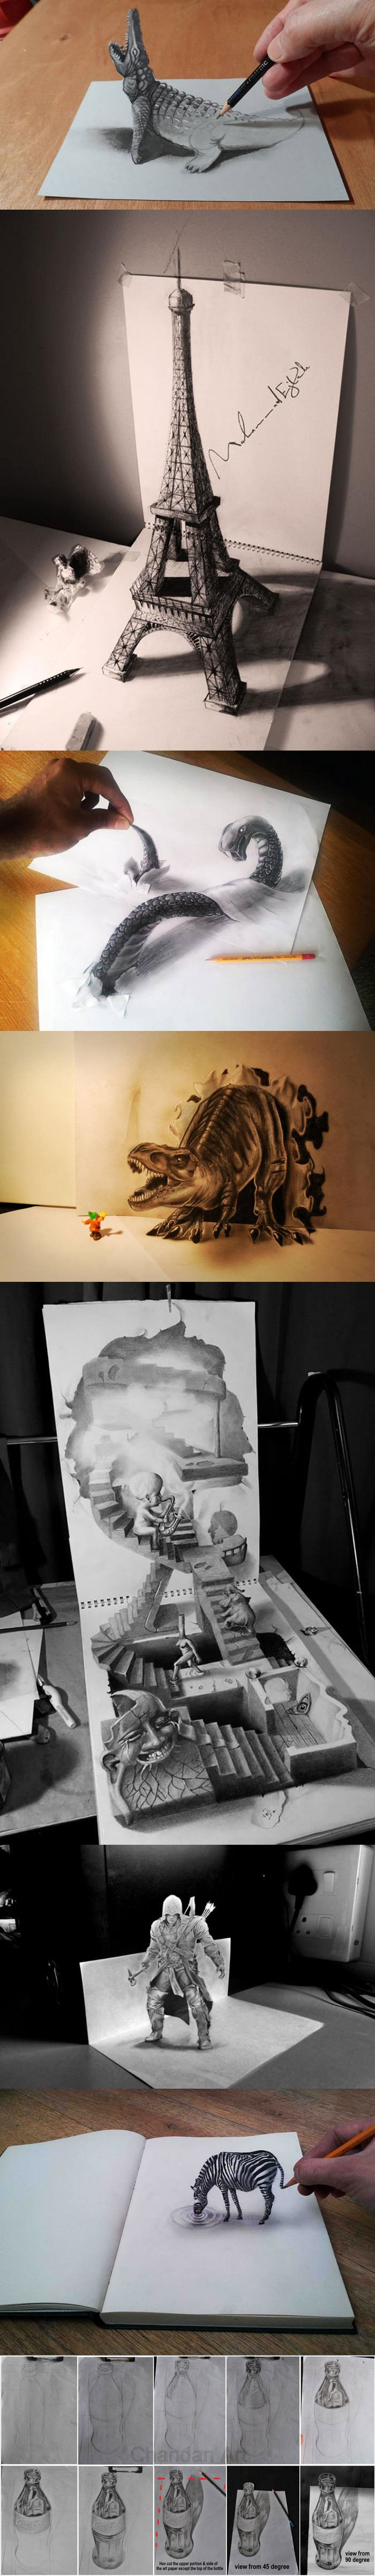 8 Stunning 3D Pencil Drawings